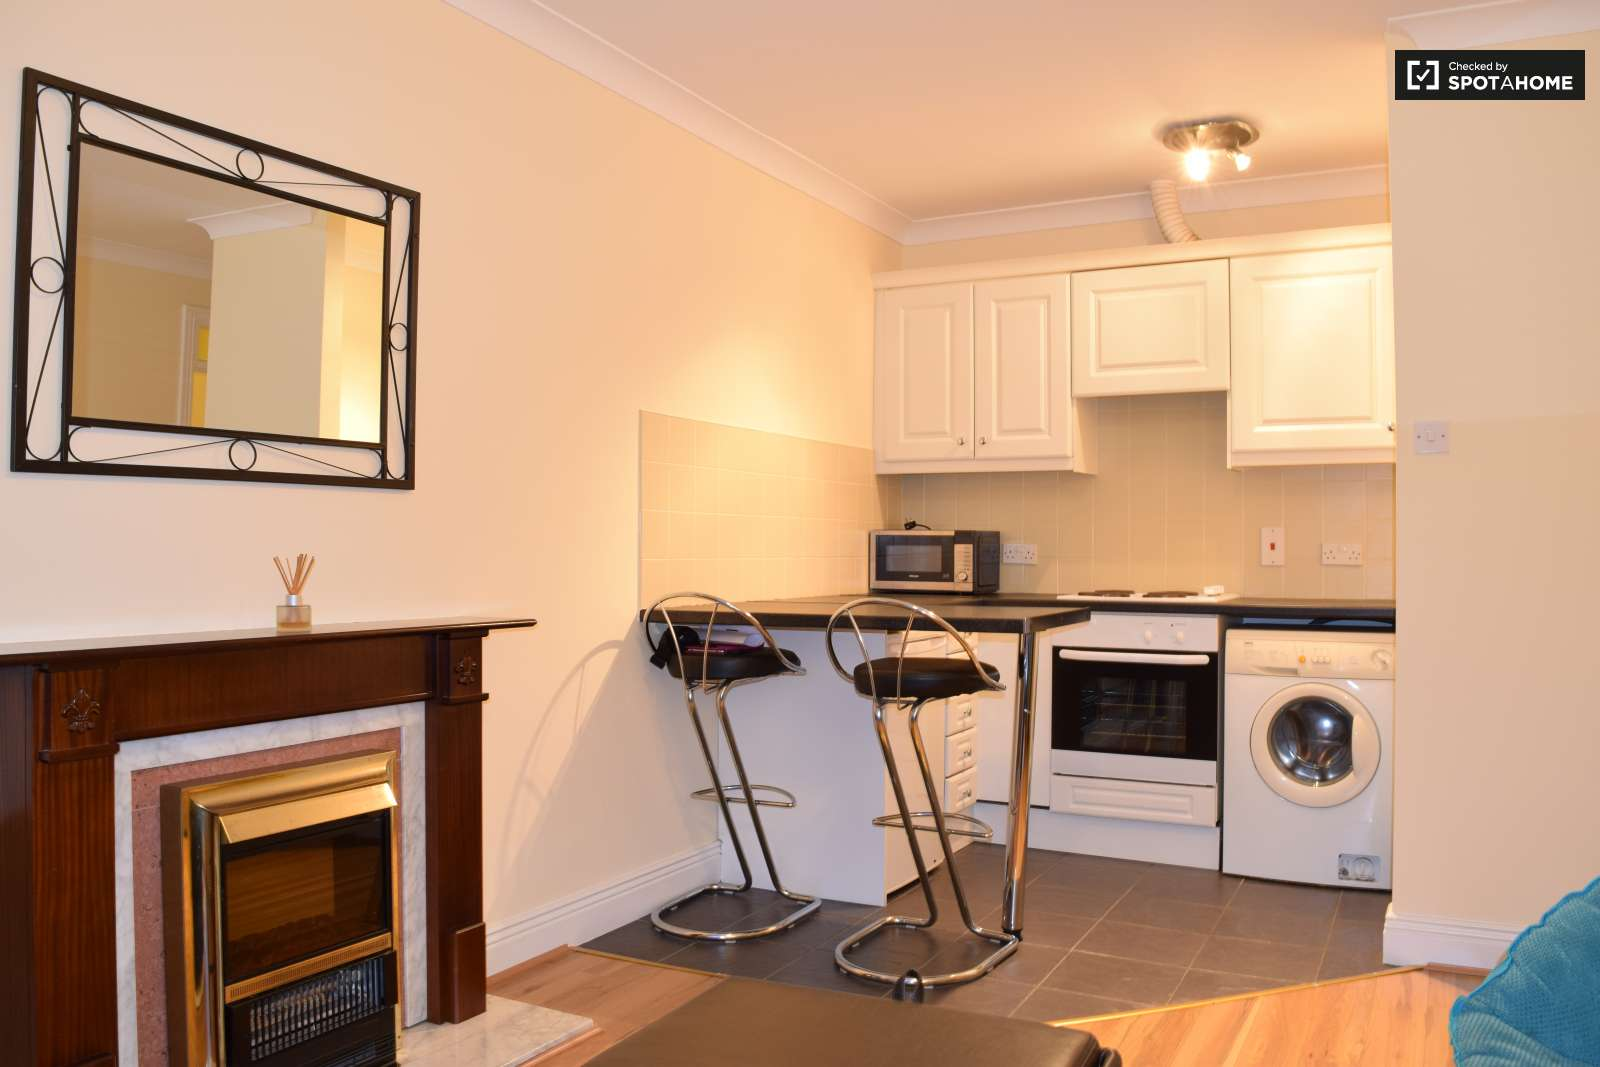 Living room   Kitchen. Central 2 Bedroom Apartment Near Trinity College  Dublin  ref